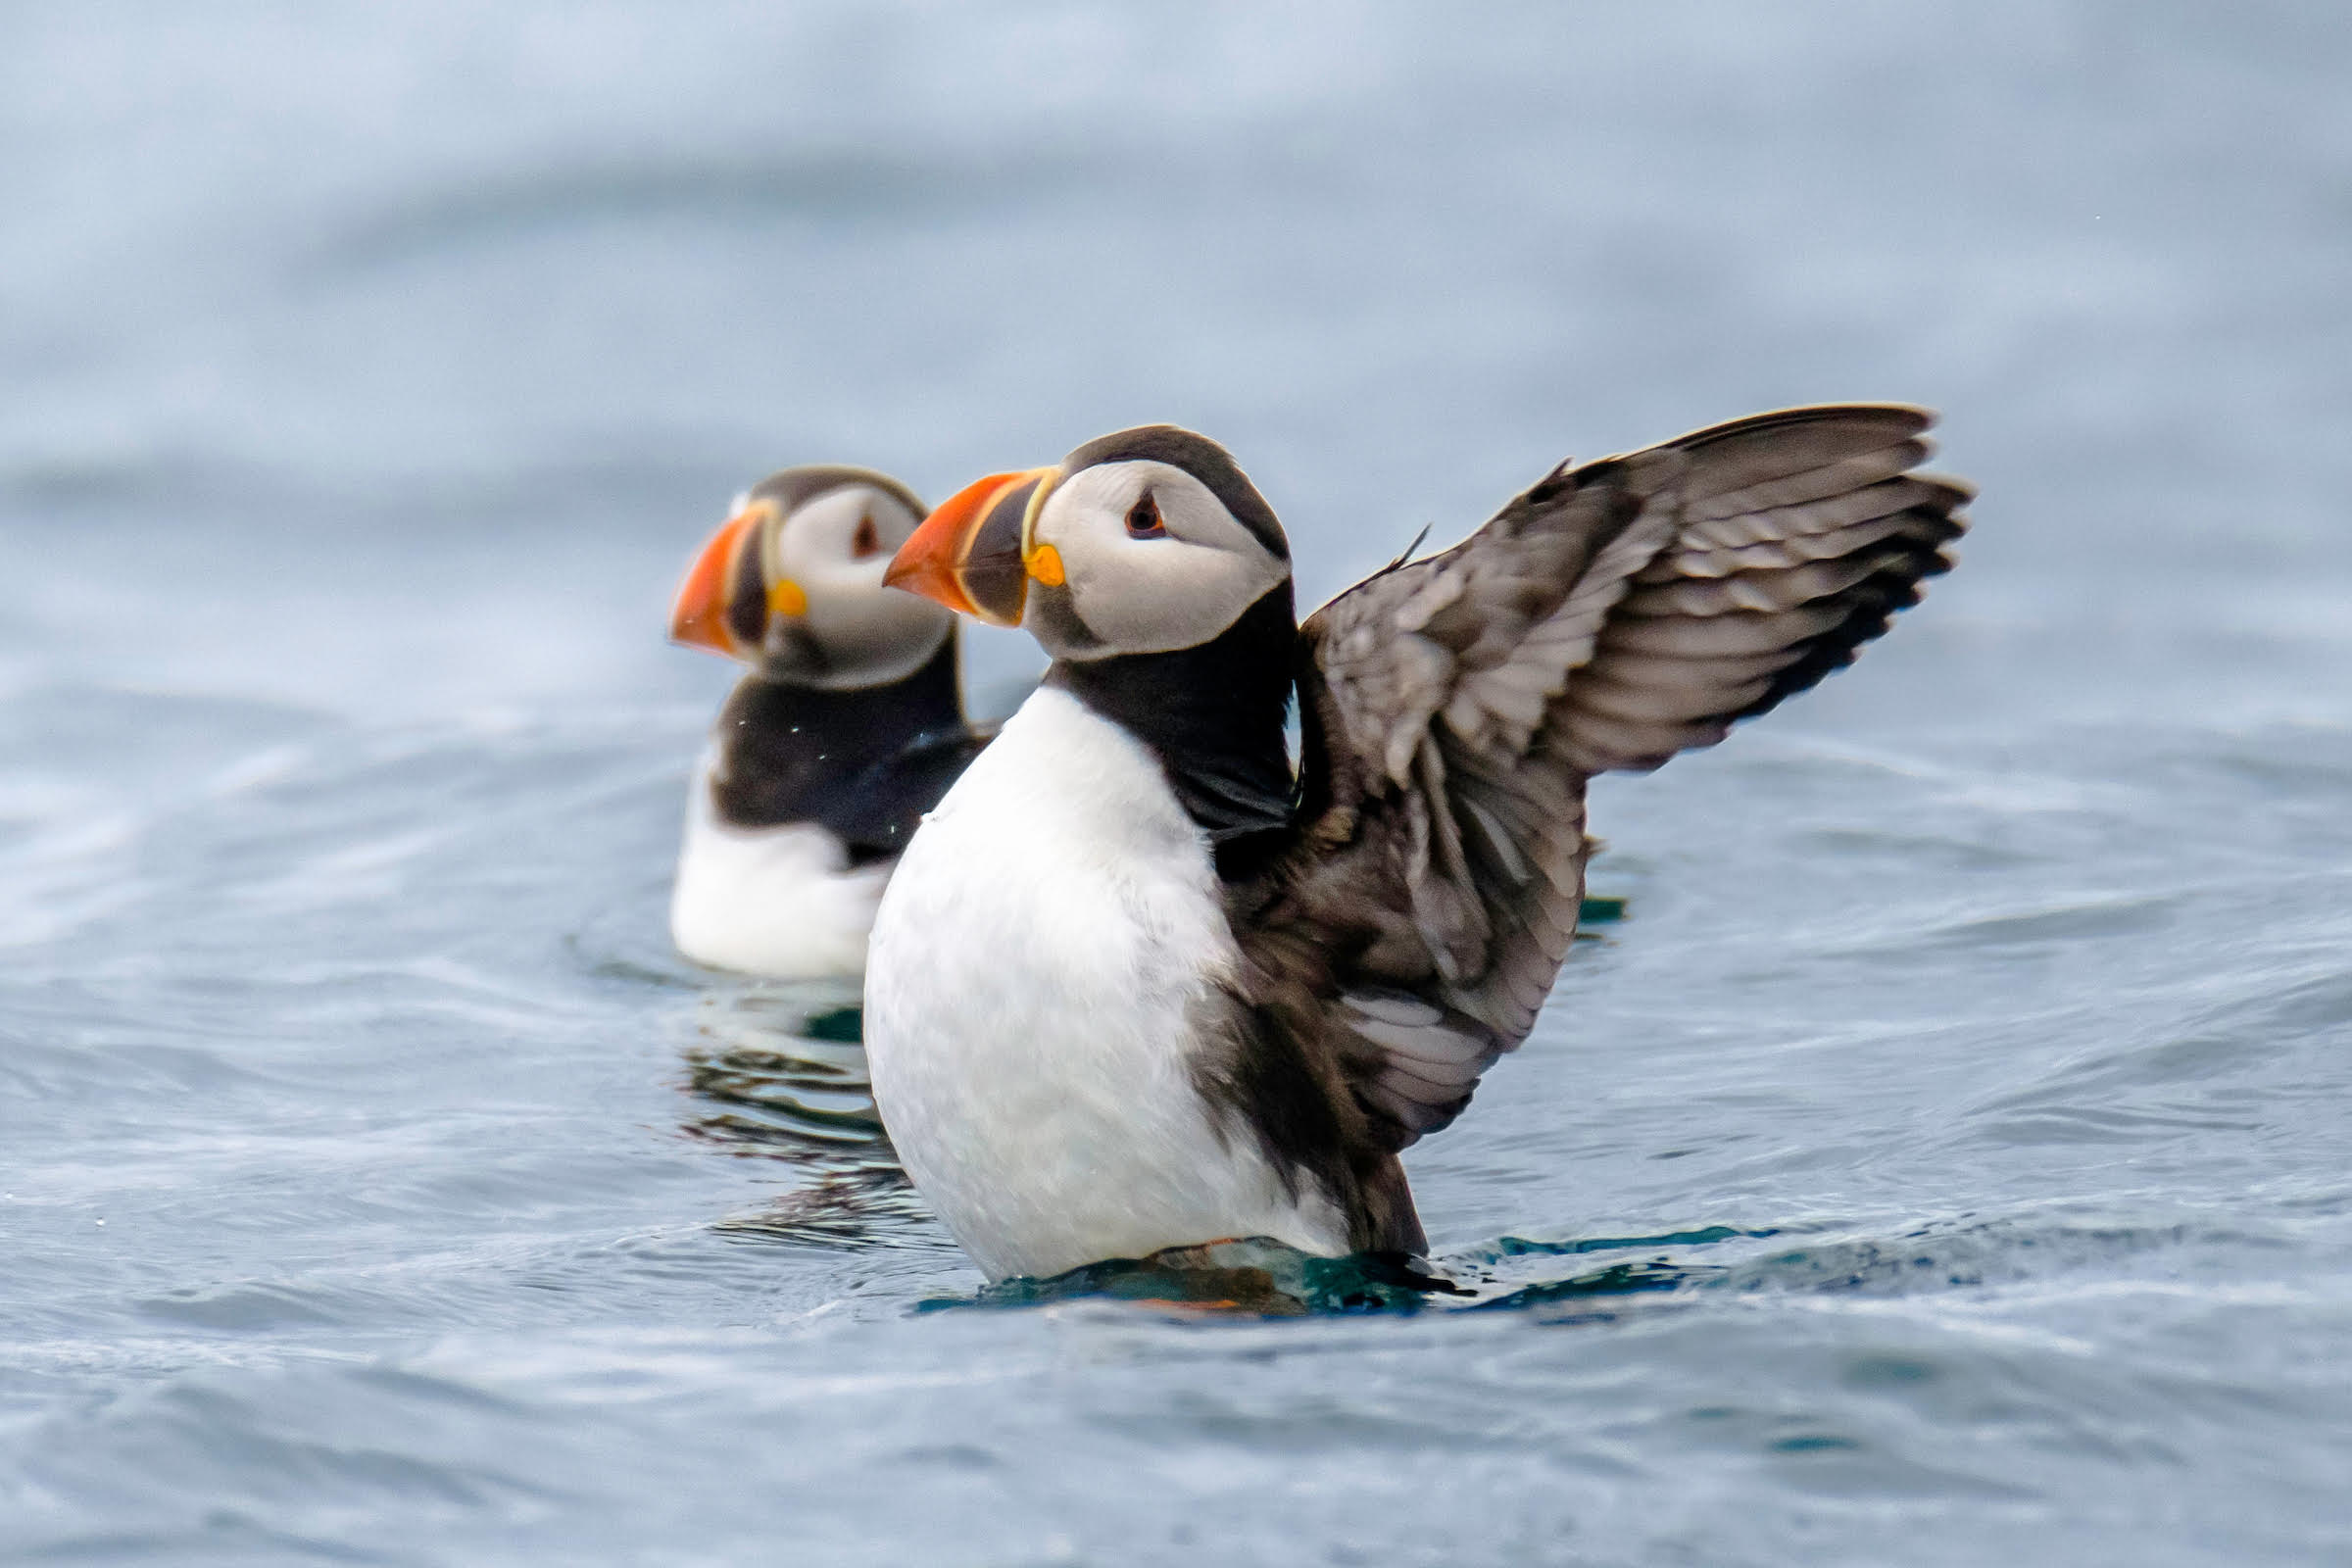 Two puffins in the water, one with it's wings raised in the air